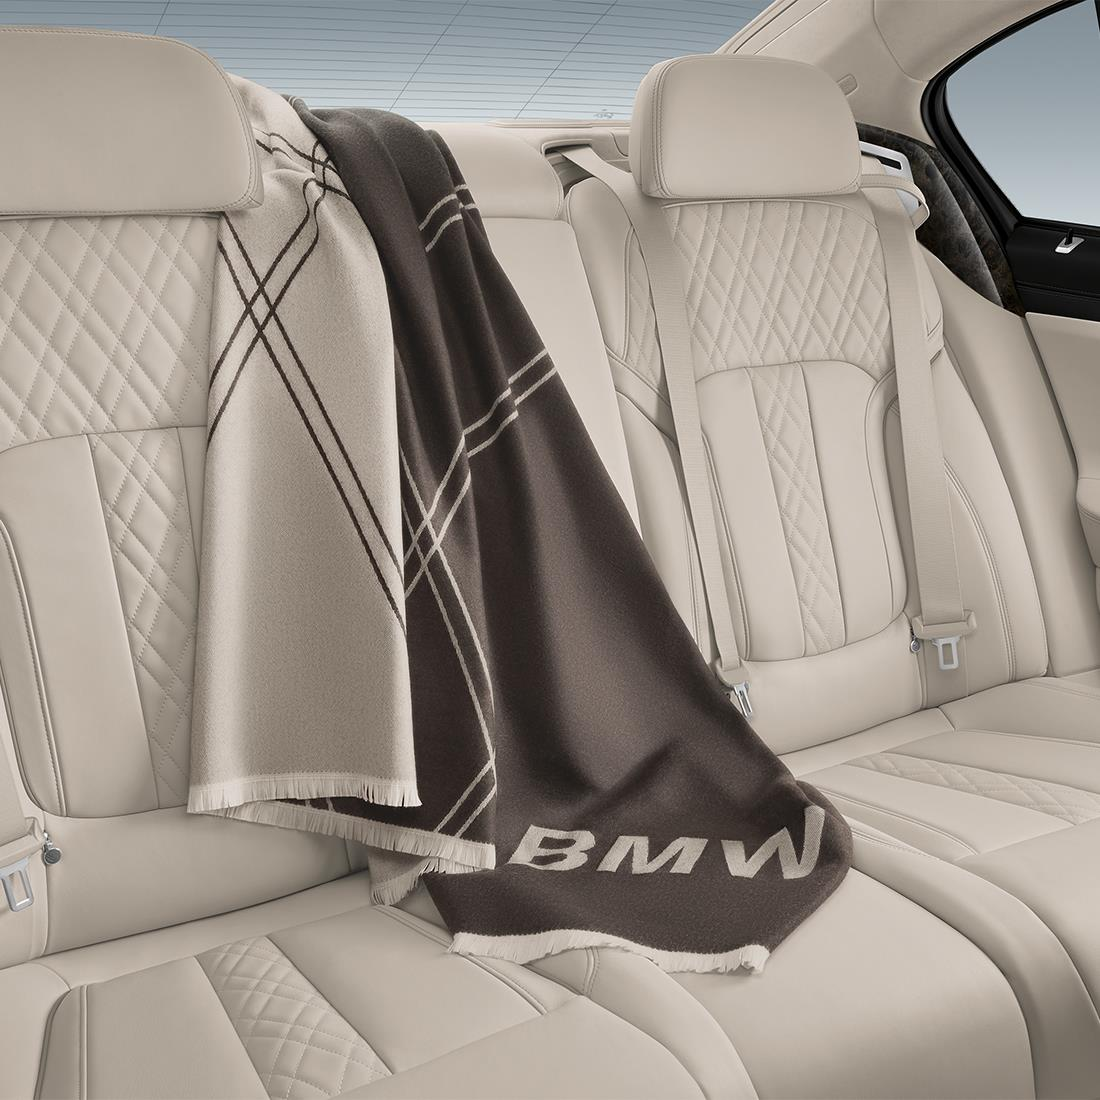 BMW Fine Merino Wool Travel Plaid Blanket